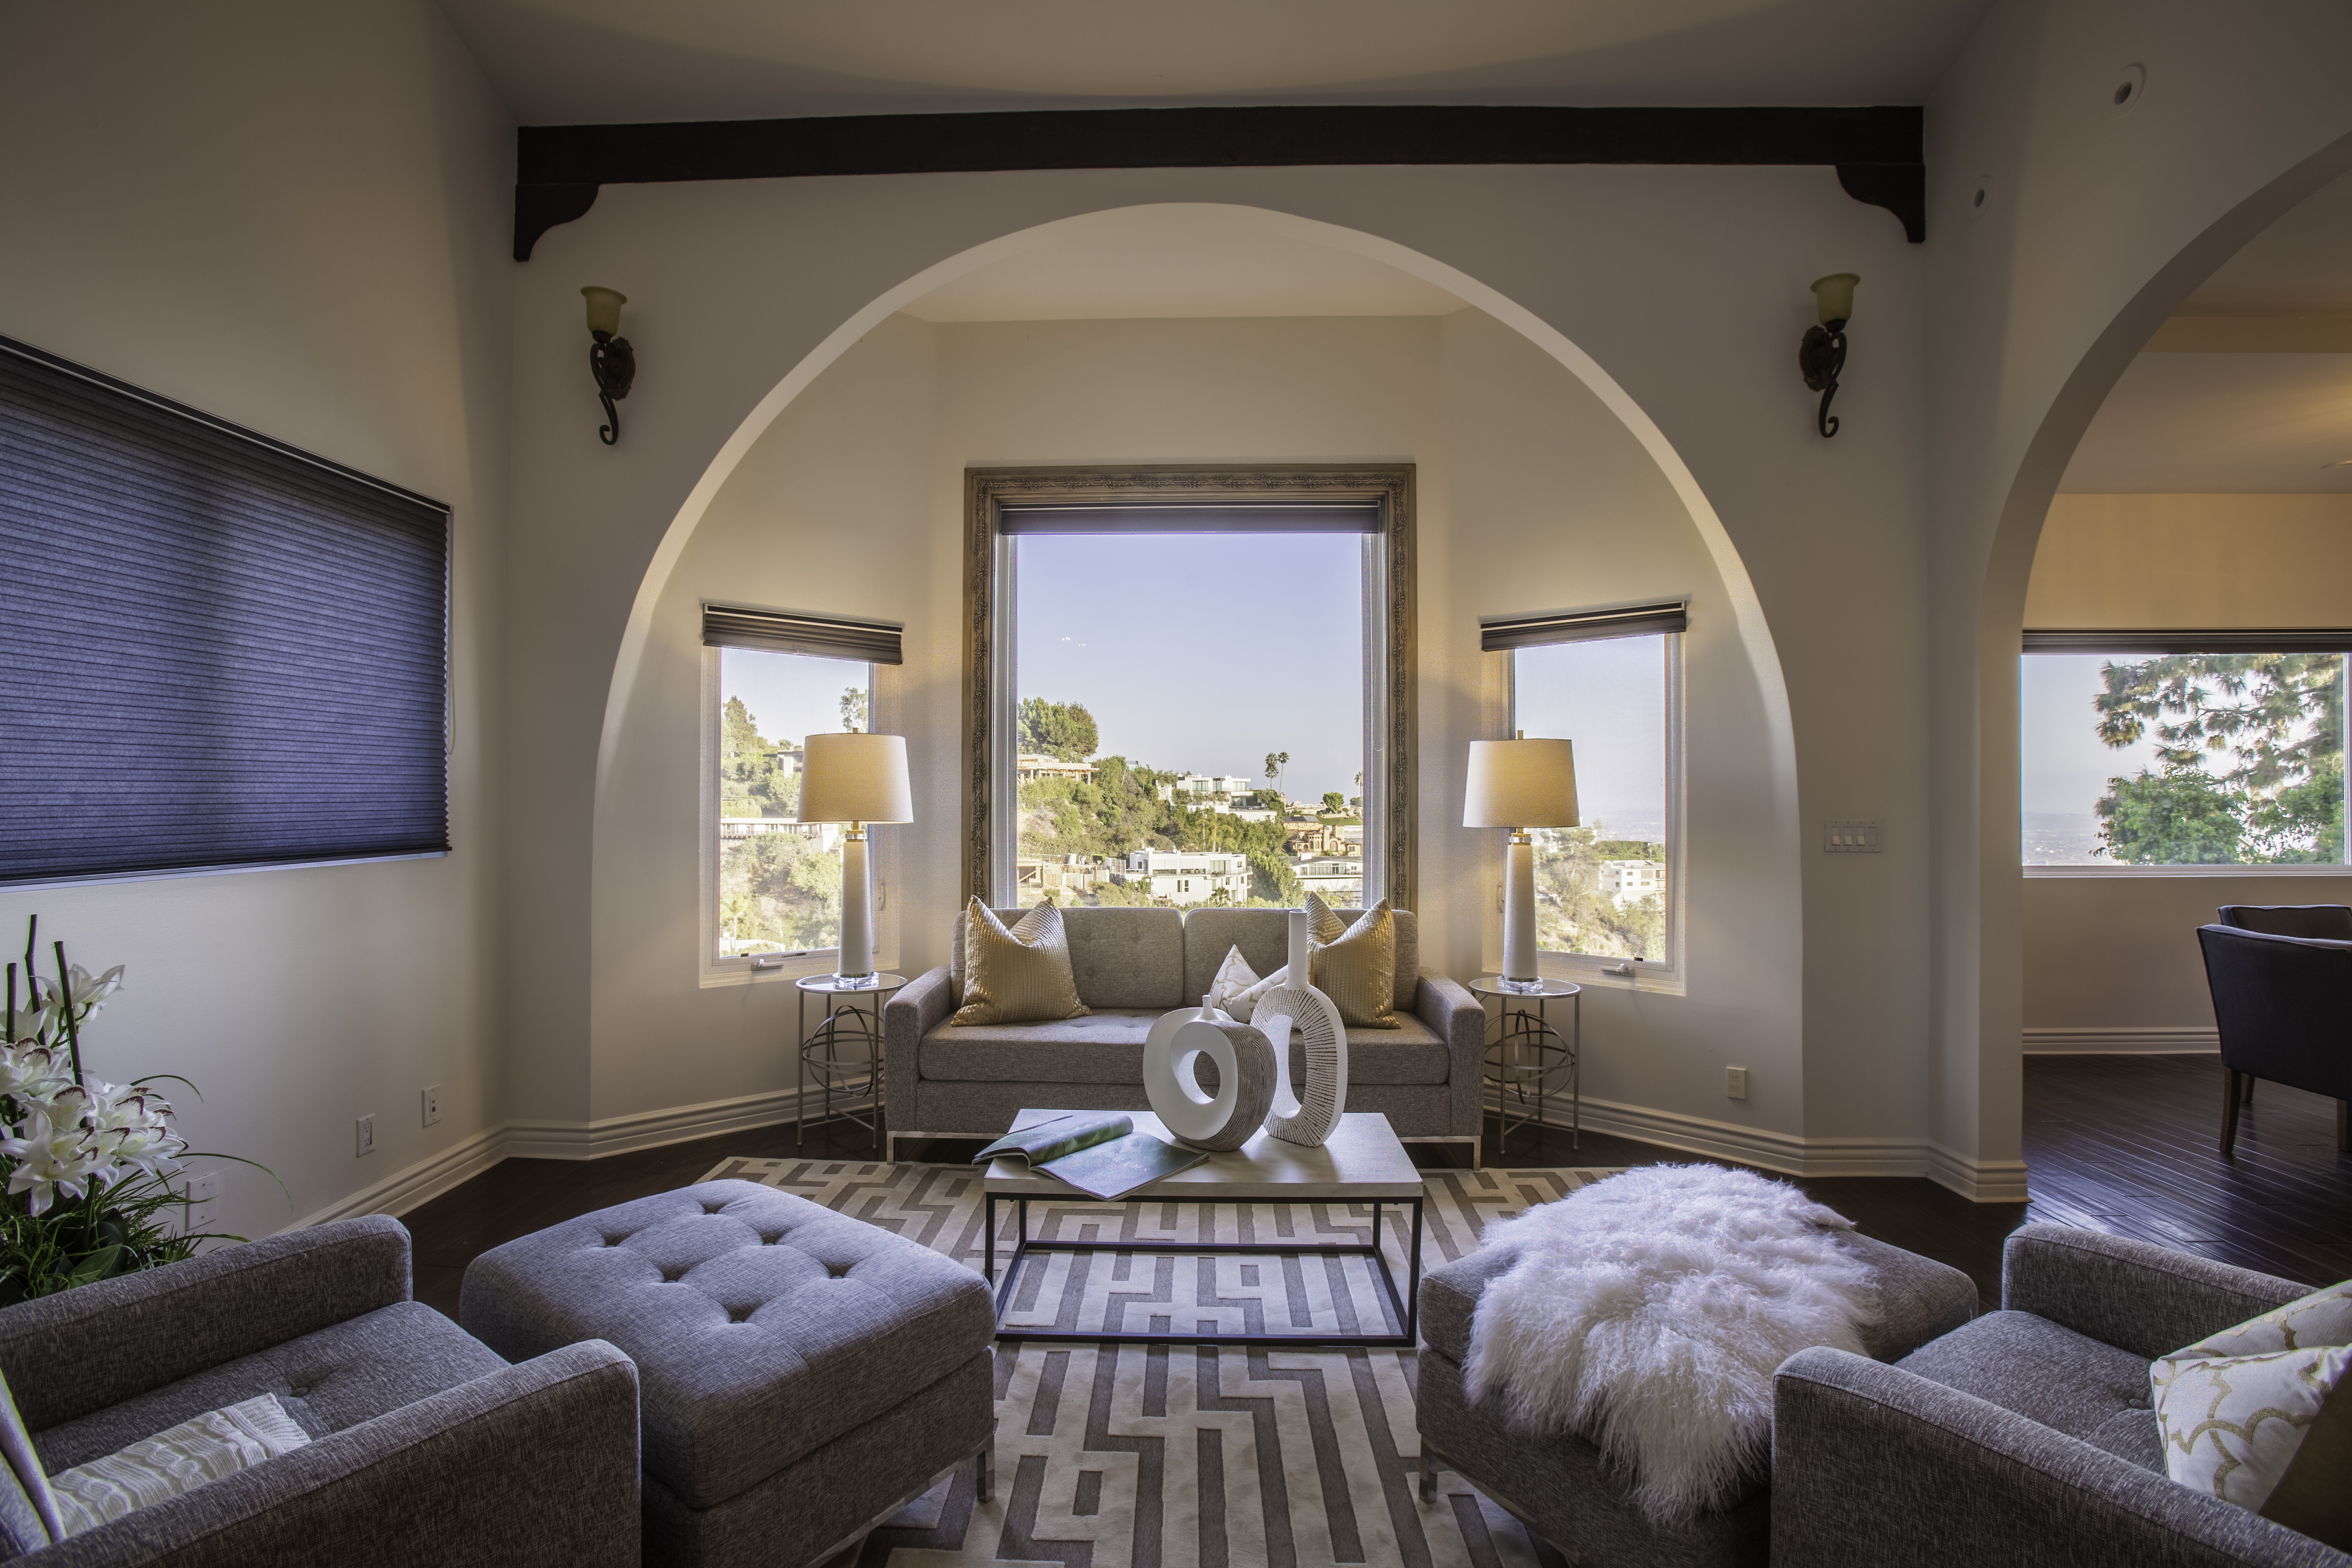 Living room with archway and three windows